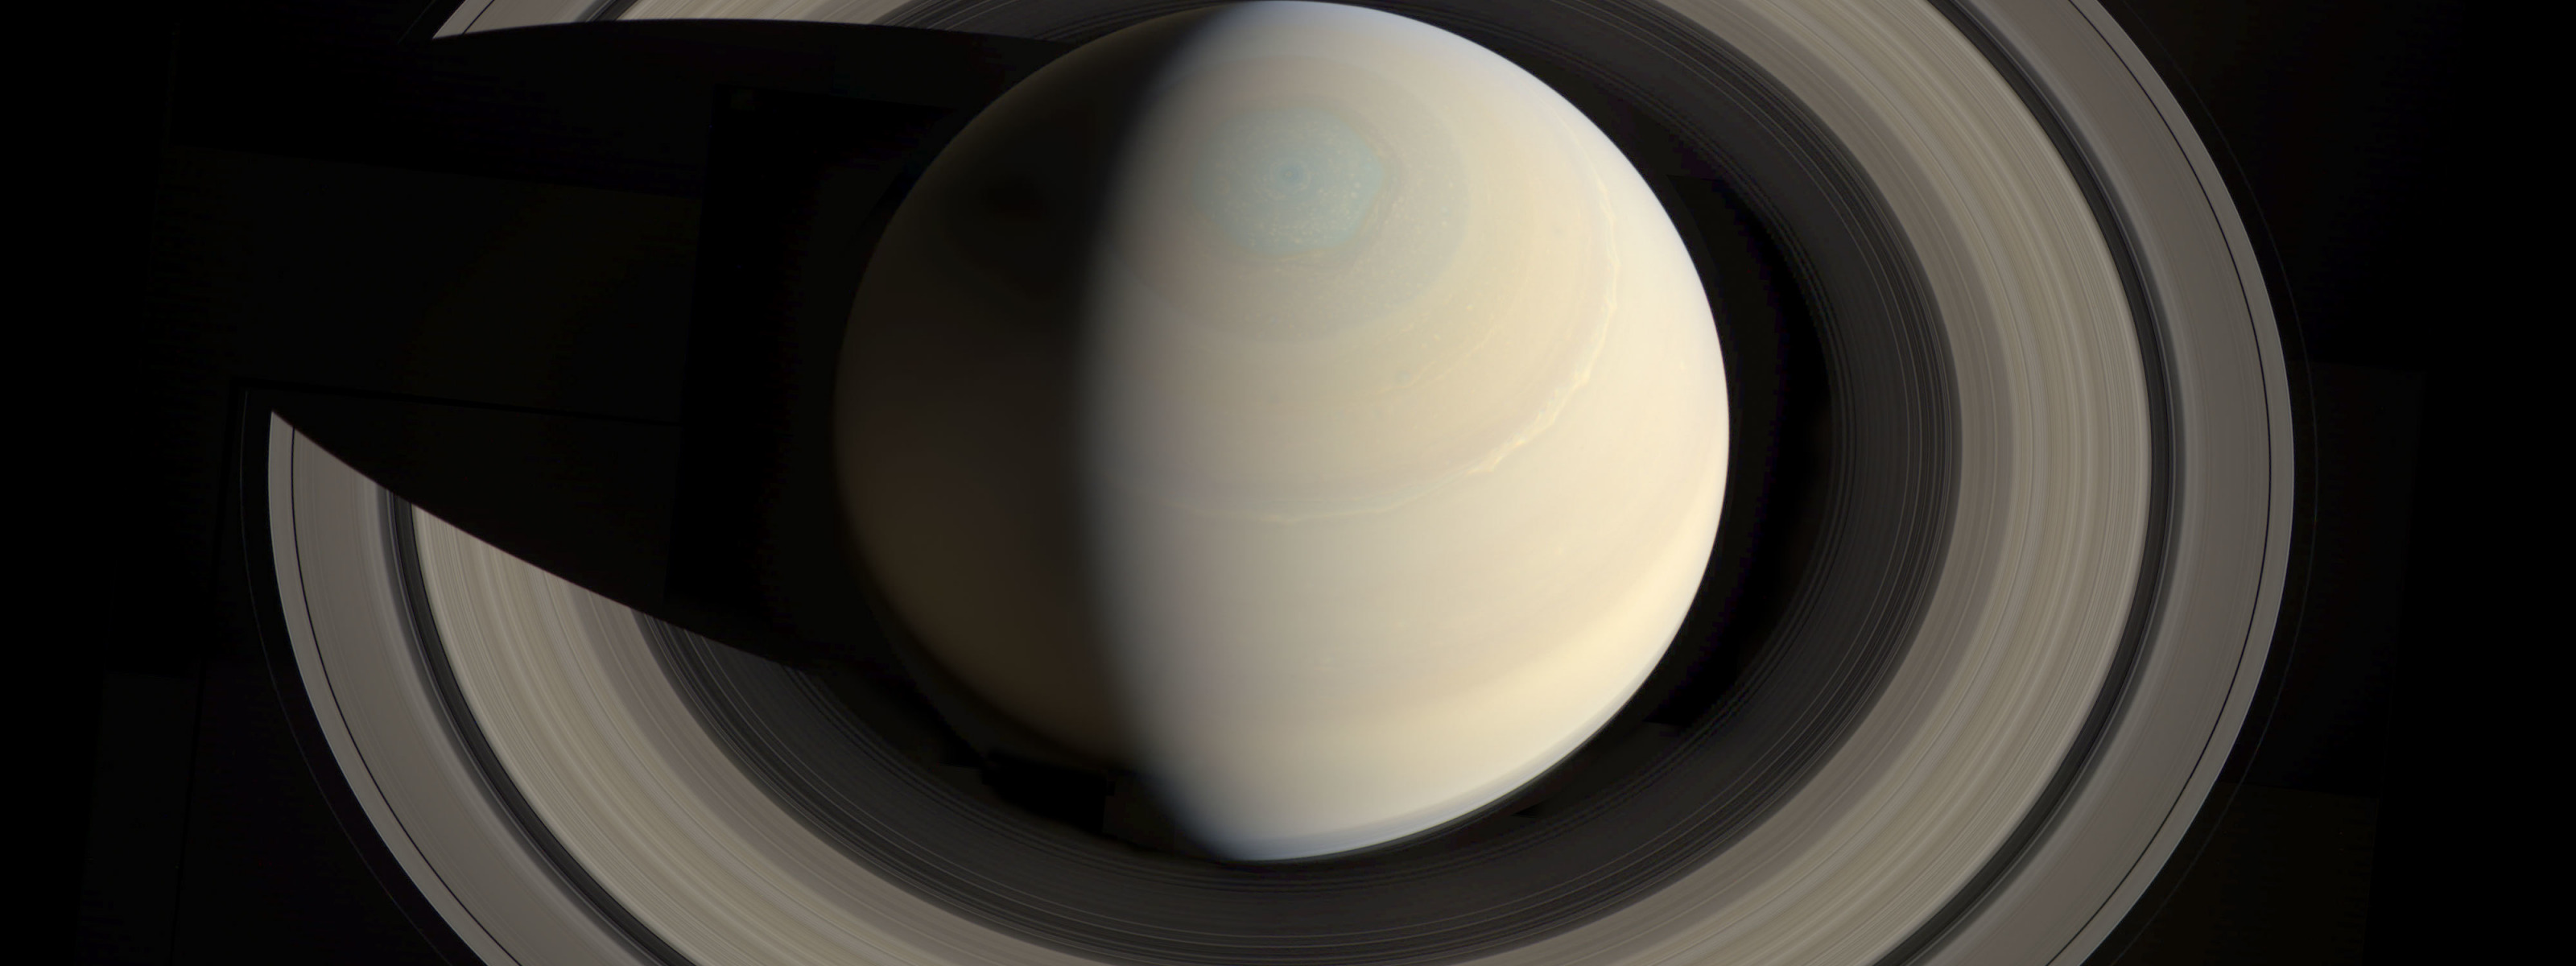 nasa saturn training - 780×410